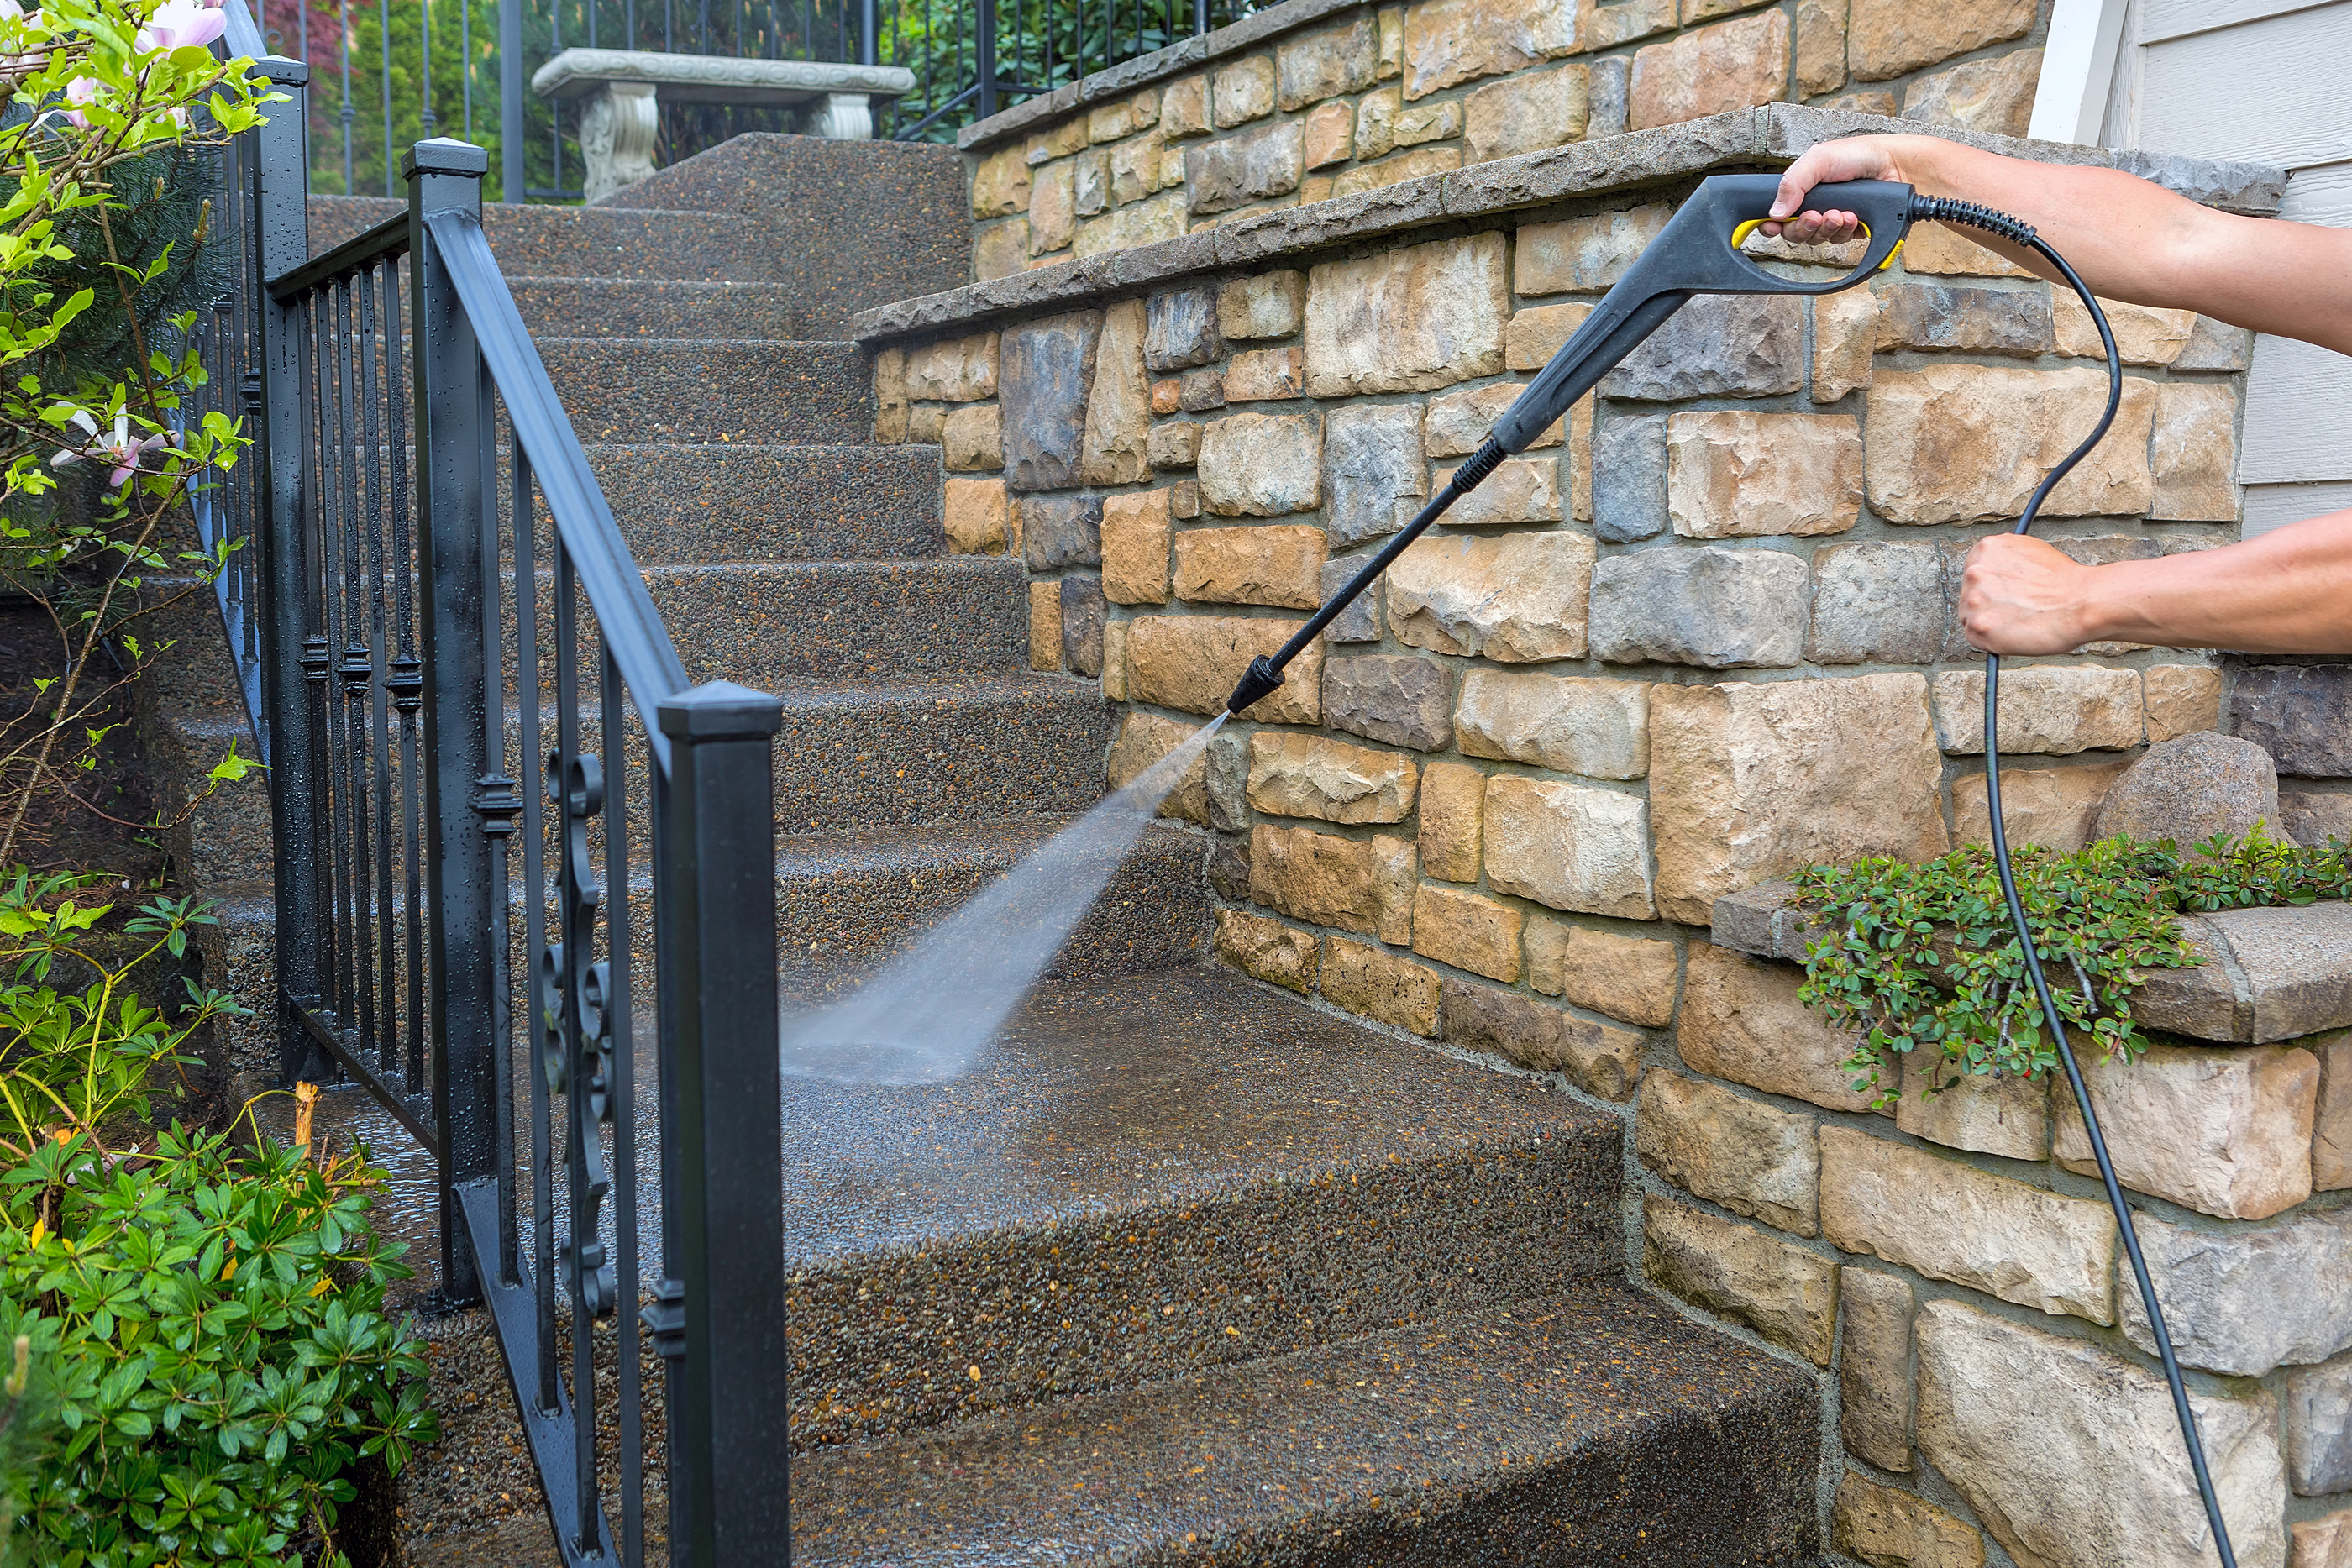 waco residential pressure washing services